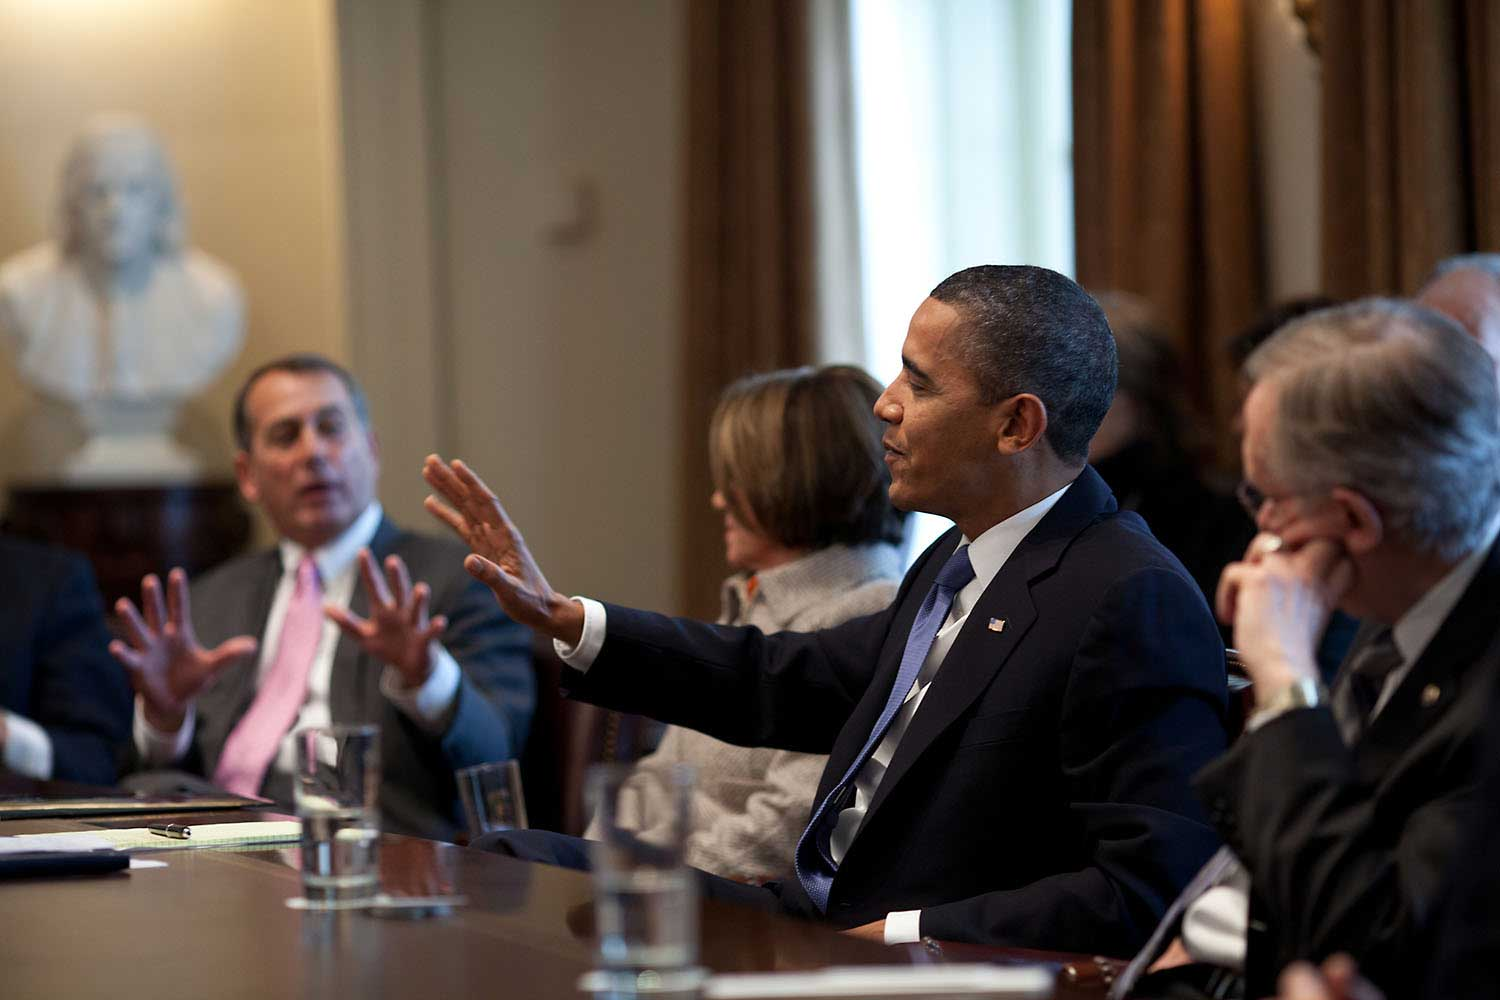 President Barack Obama engages with Rep. John Boehner, soon-to-be Speaker of the House, during a spirited bipartisan Congressional leadership meeting in the Cabinet Room of the White House, Feb. 9, 2010.